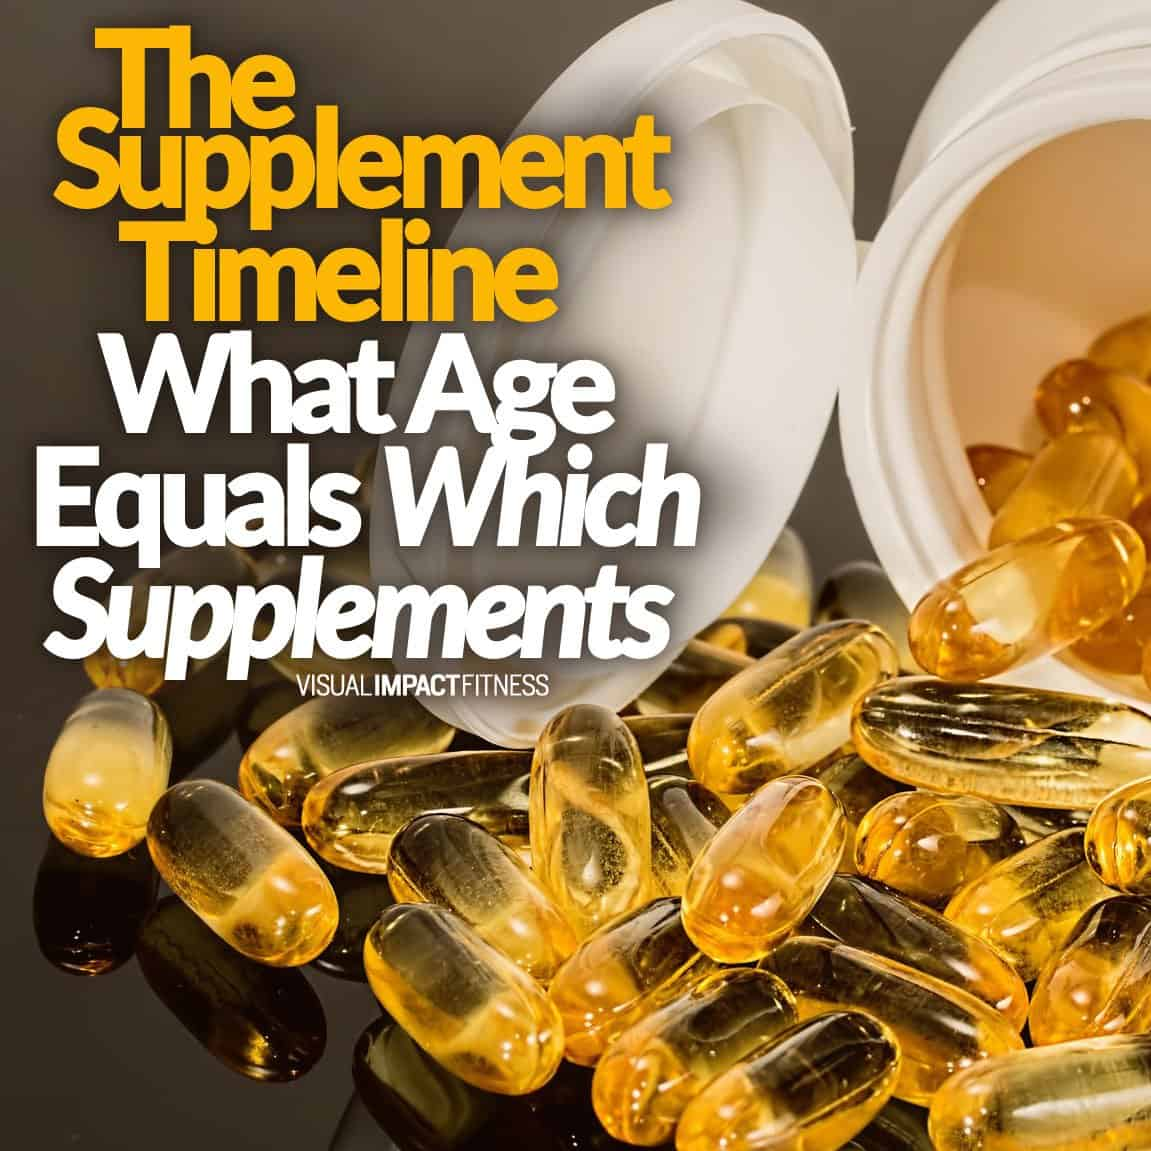 The Supplement Timeline